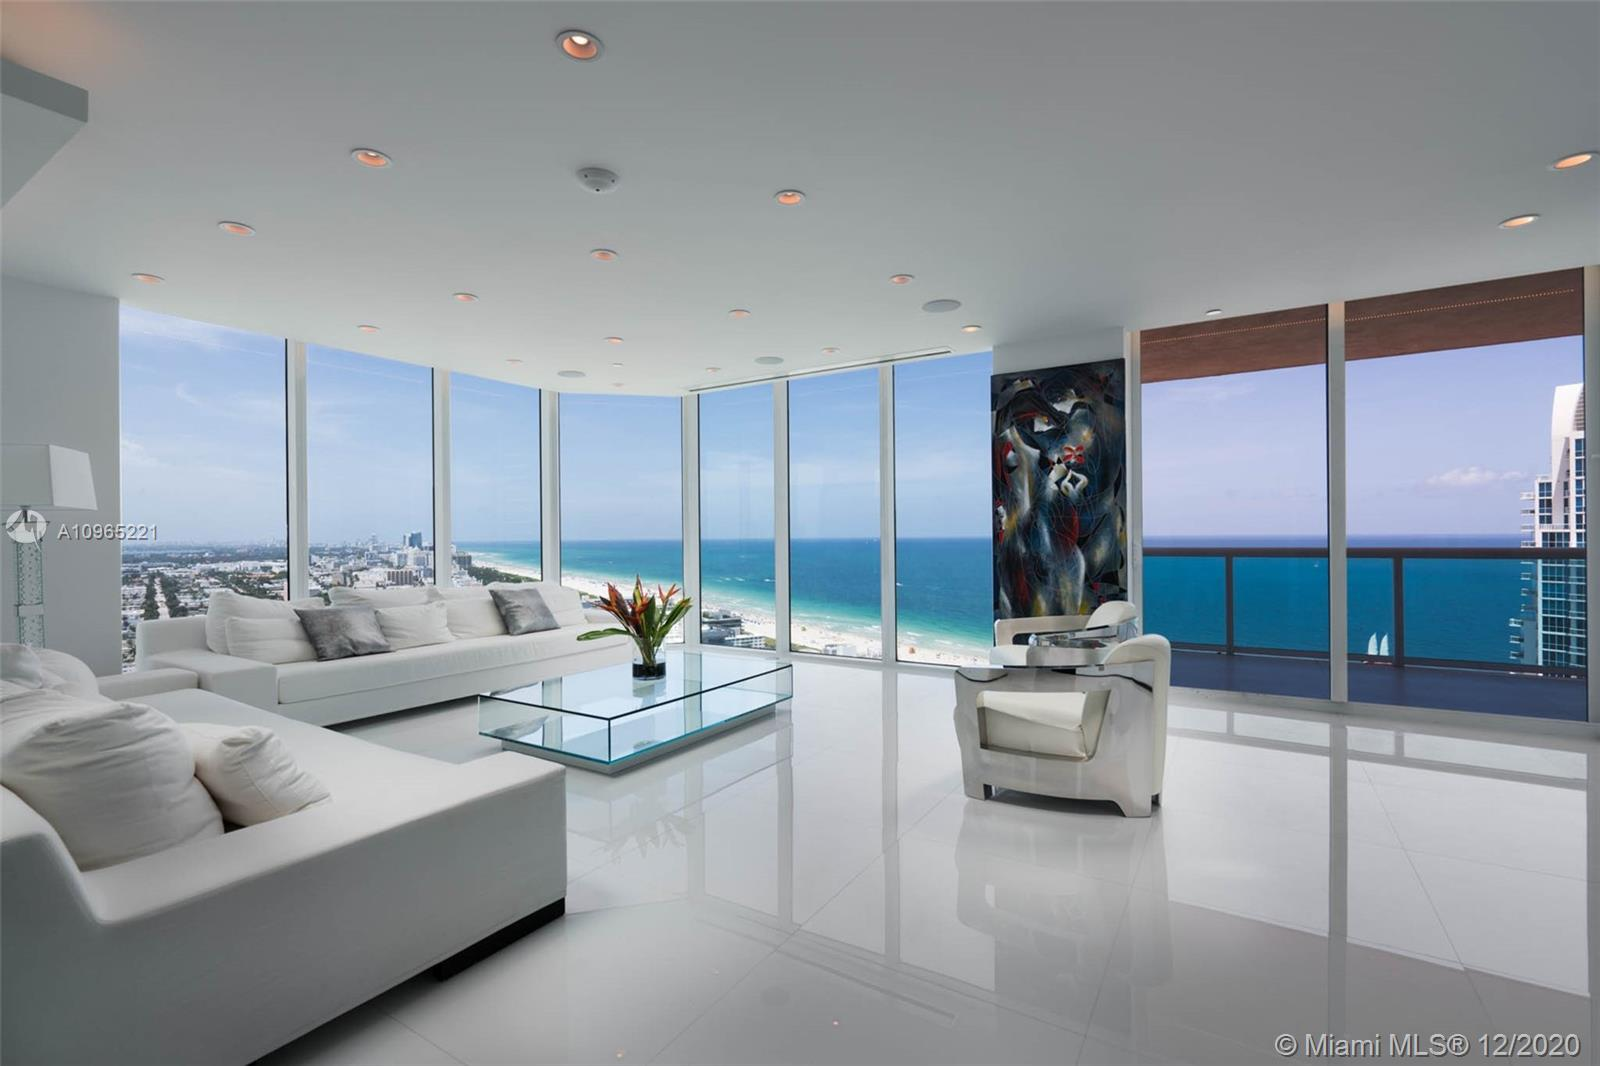 Absolutely Spectacular panoramic views from the bay to the ocean from this spacious & rare double apartment in the sky! Fully & smartly renovated in 2013 to create a wonderful home for family and entertainment. Elevator opens directly into your private gallery entrance. Home features 4 large bdrms, 2 of which are master suites. 4 balconies, spacious living room with floor to ceiling glass offering the coveted S Pointe view, Bulthaup kitchen, oversized dining, lots of storage, steam shower, crystal chandeliers & much more.Portofino Tower is full service luxury building; tennis courts, pool, full-floor fitness center, spa, valet, concierge, dog park & excellent management.Live the S of 5th lifestyle in the best beach neighborhood, surrounded by restaurants, park, marina, shops and the ocean